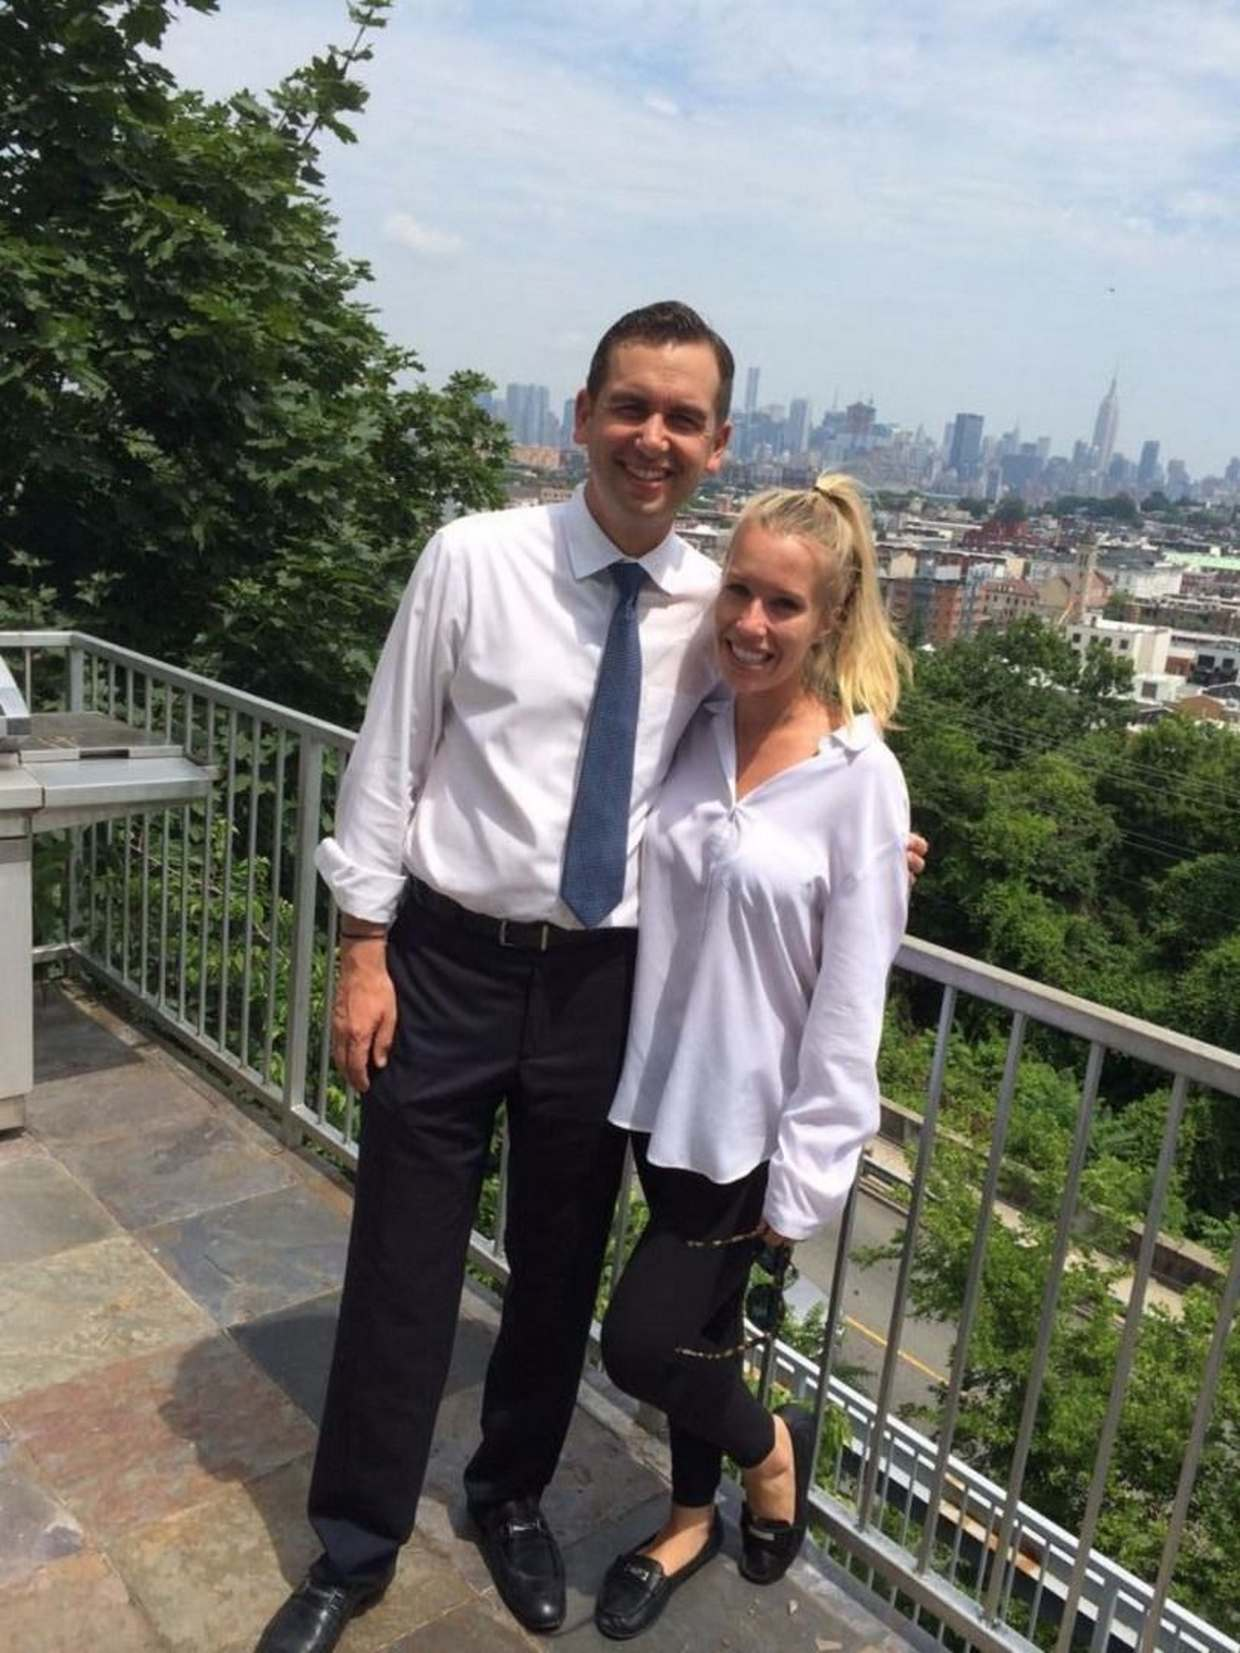 Mayor Fulop poses with girlfriend in Jersey City.